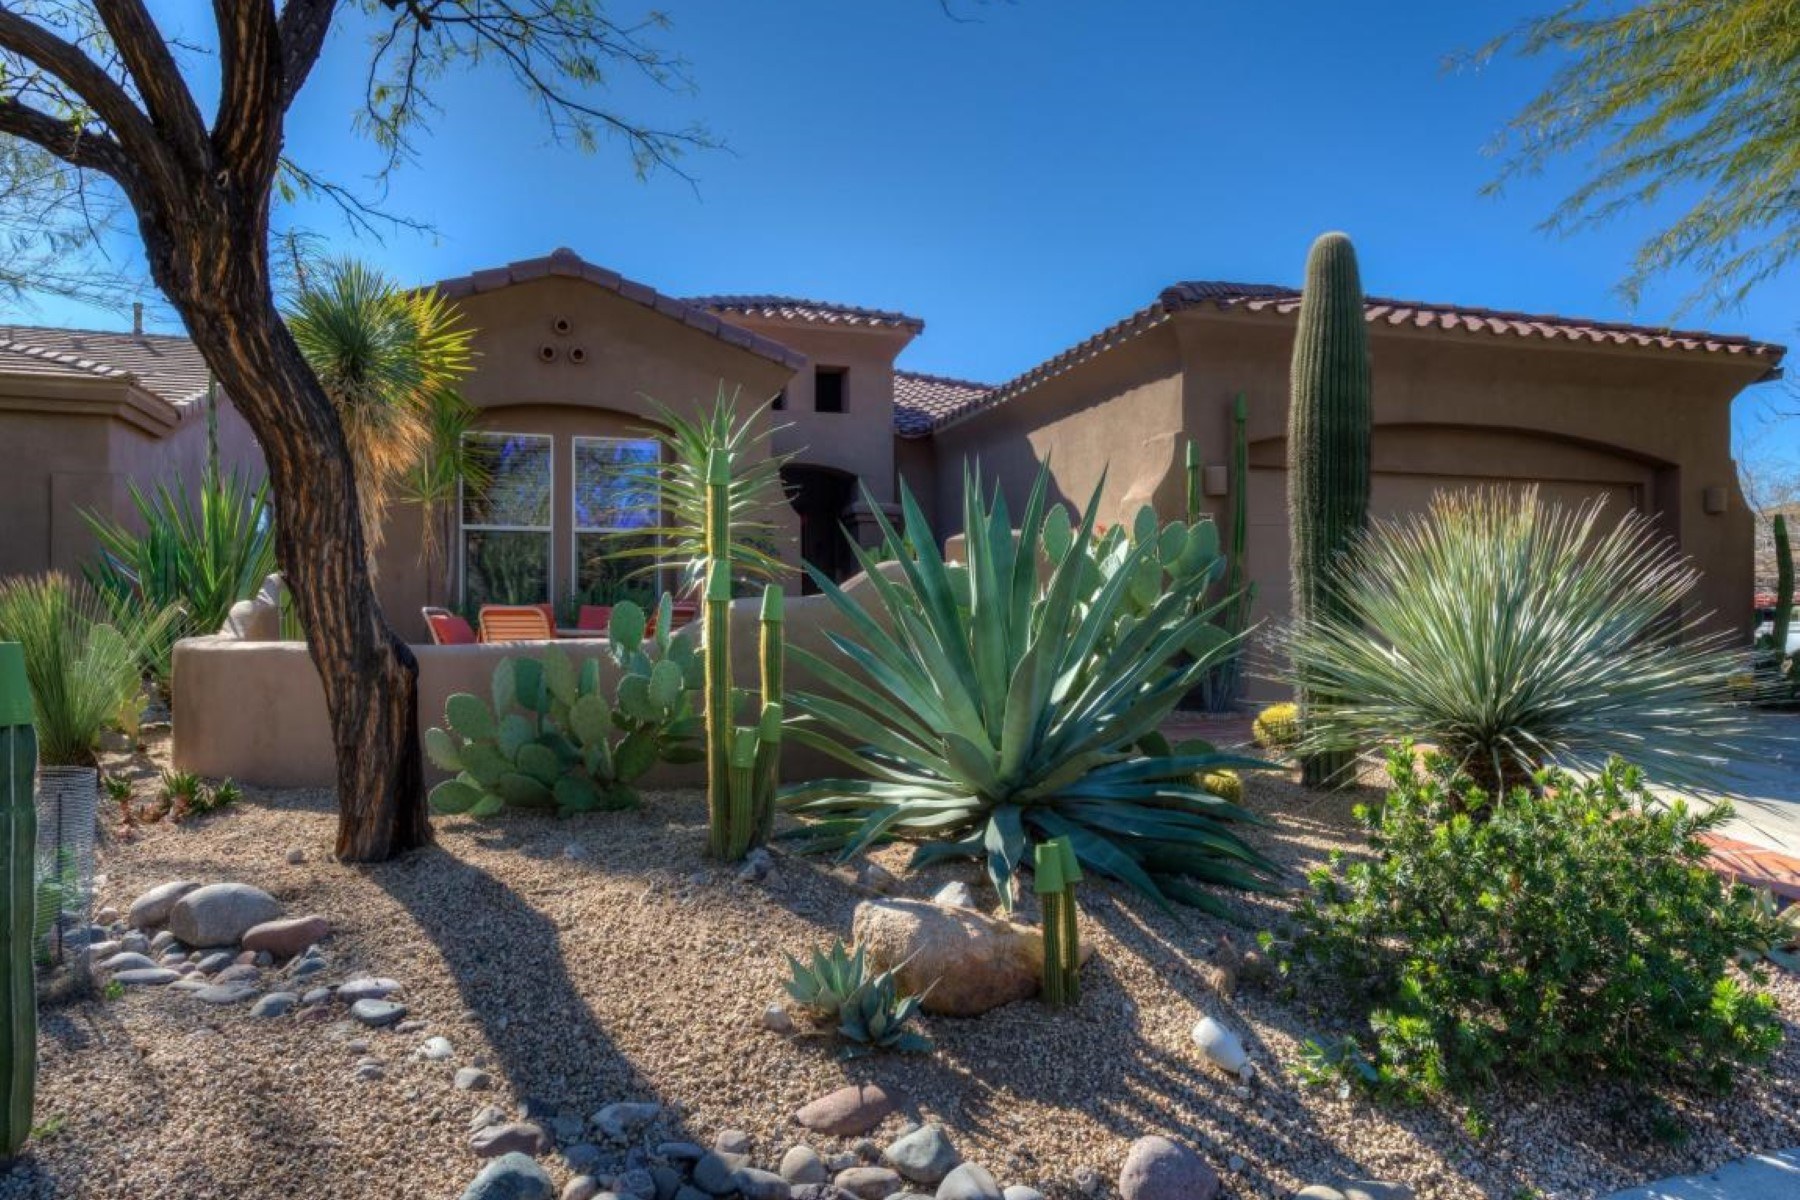 Villa per Vendita alle ore Immaculate guard gated in Winfield 7305 E Russet Sky Dr Scottsdale, Arizona, 85266 Stati Uniti